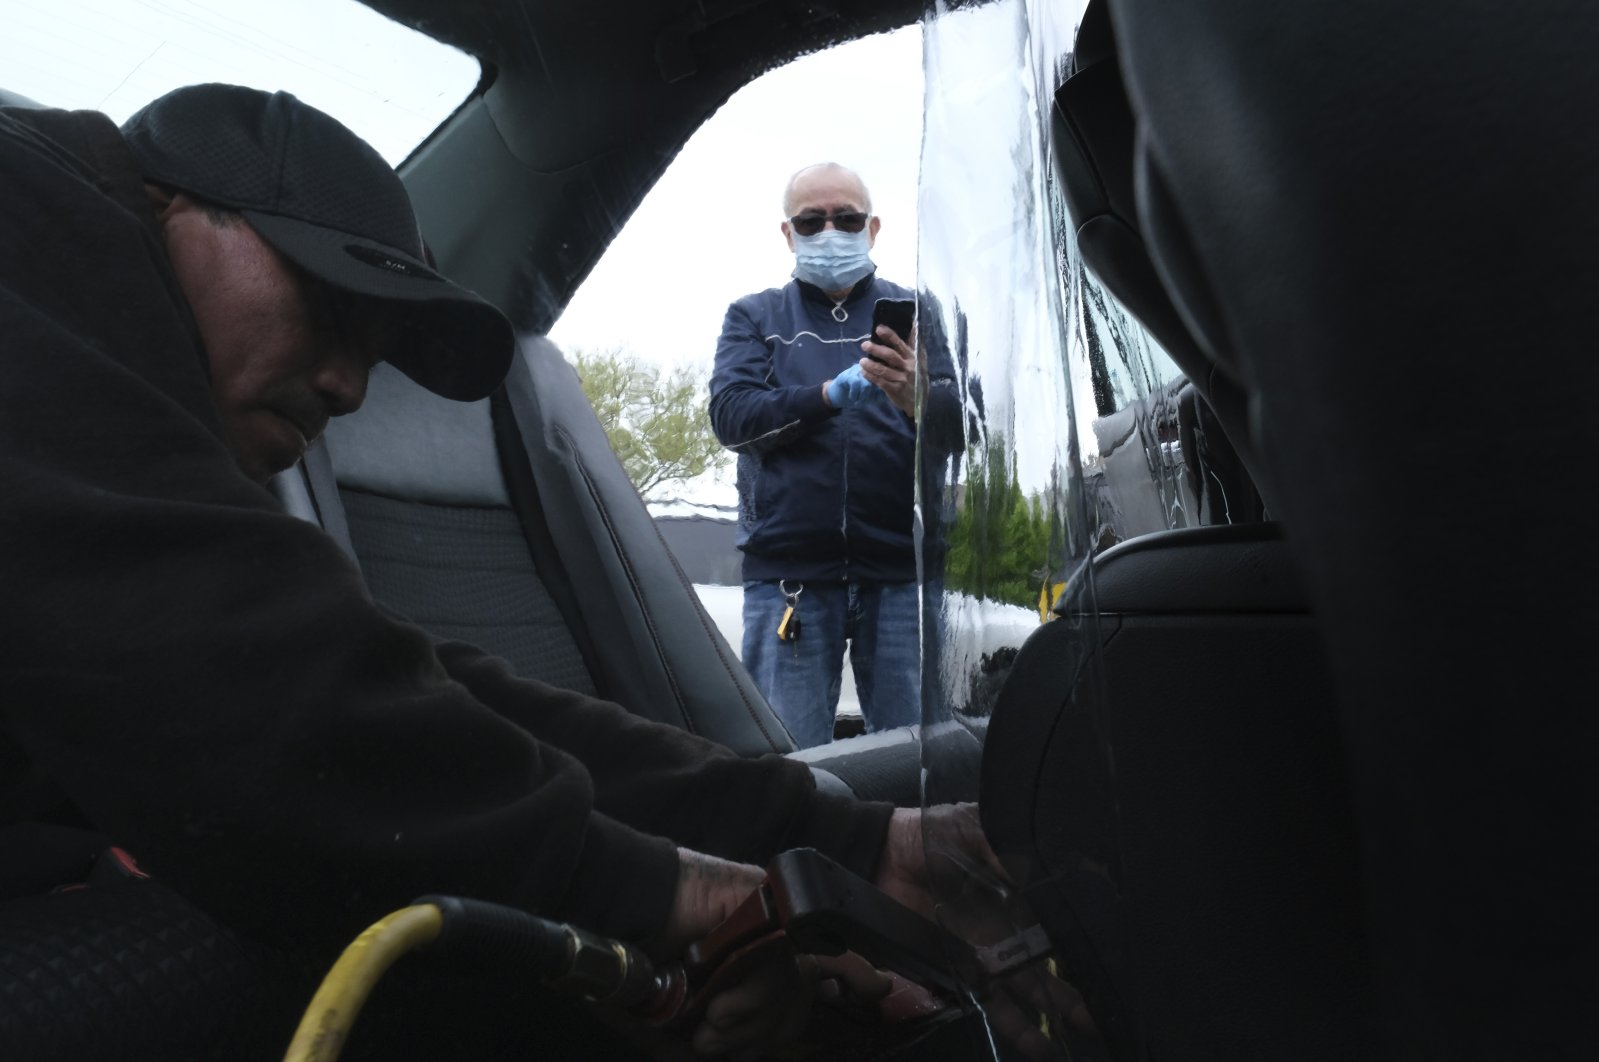 Luis Hidalgo, wearing a face mask, watches as Joel Rios installs a plastic barrier in his car to protect himself and his passengers from the new coronavirus in the Bronx borough of New York, U.S., May 6, 2020. (AP Photo)